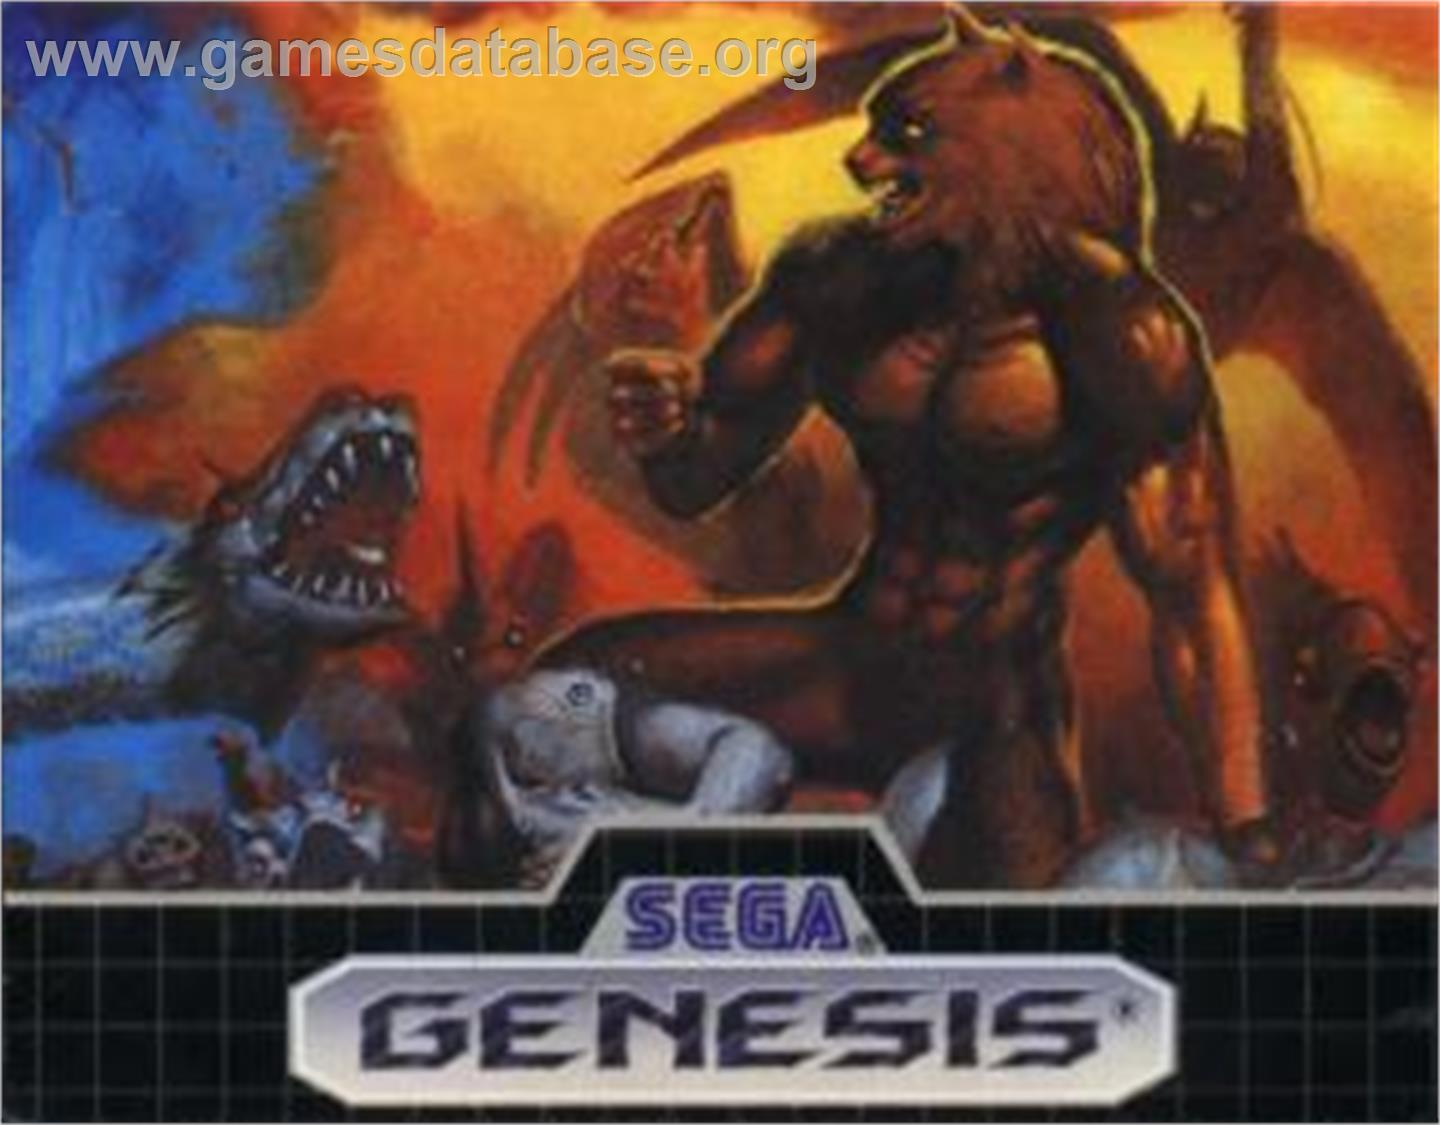 On for Altered beast